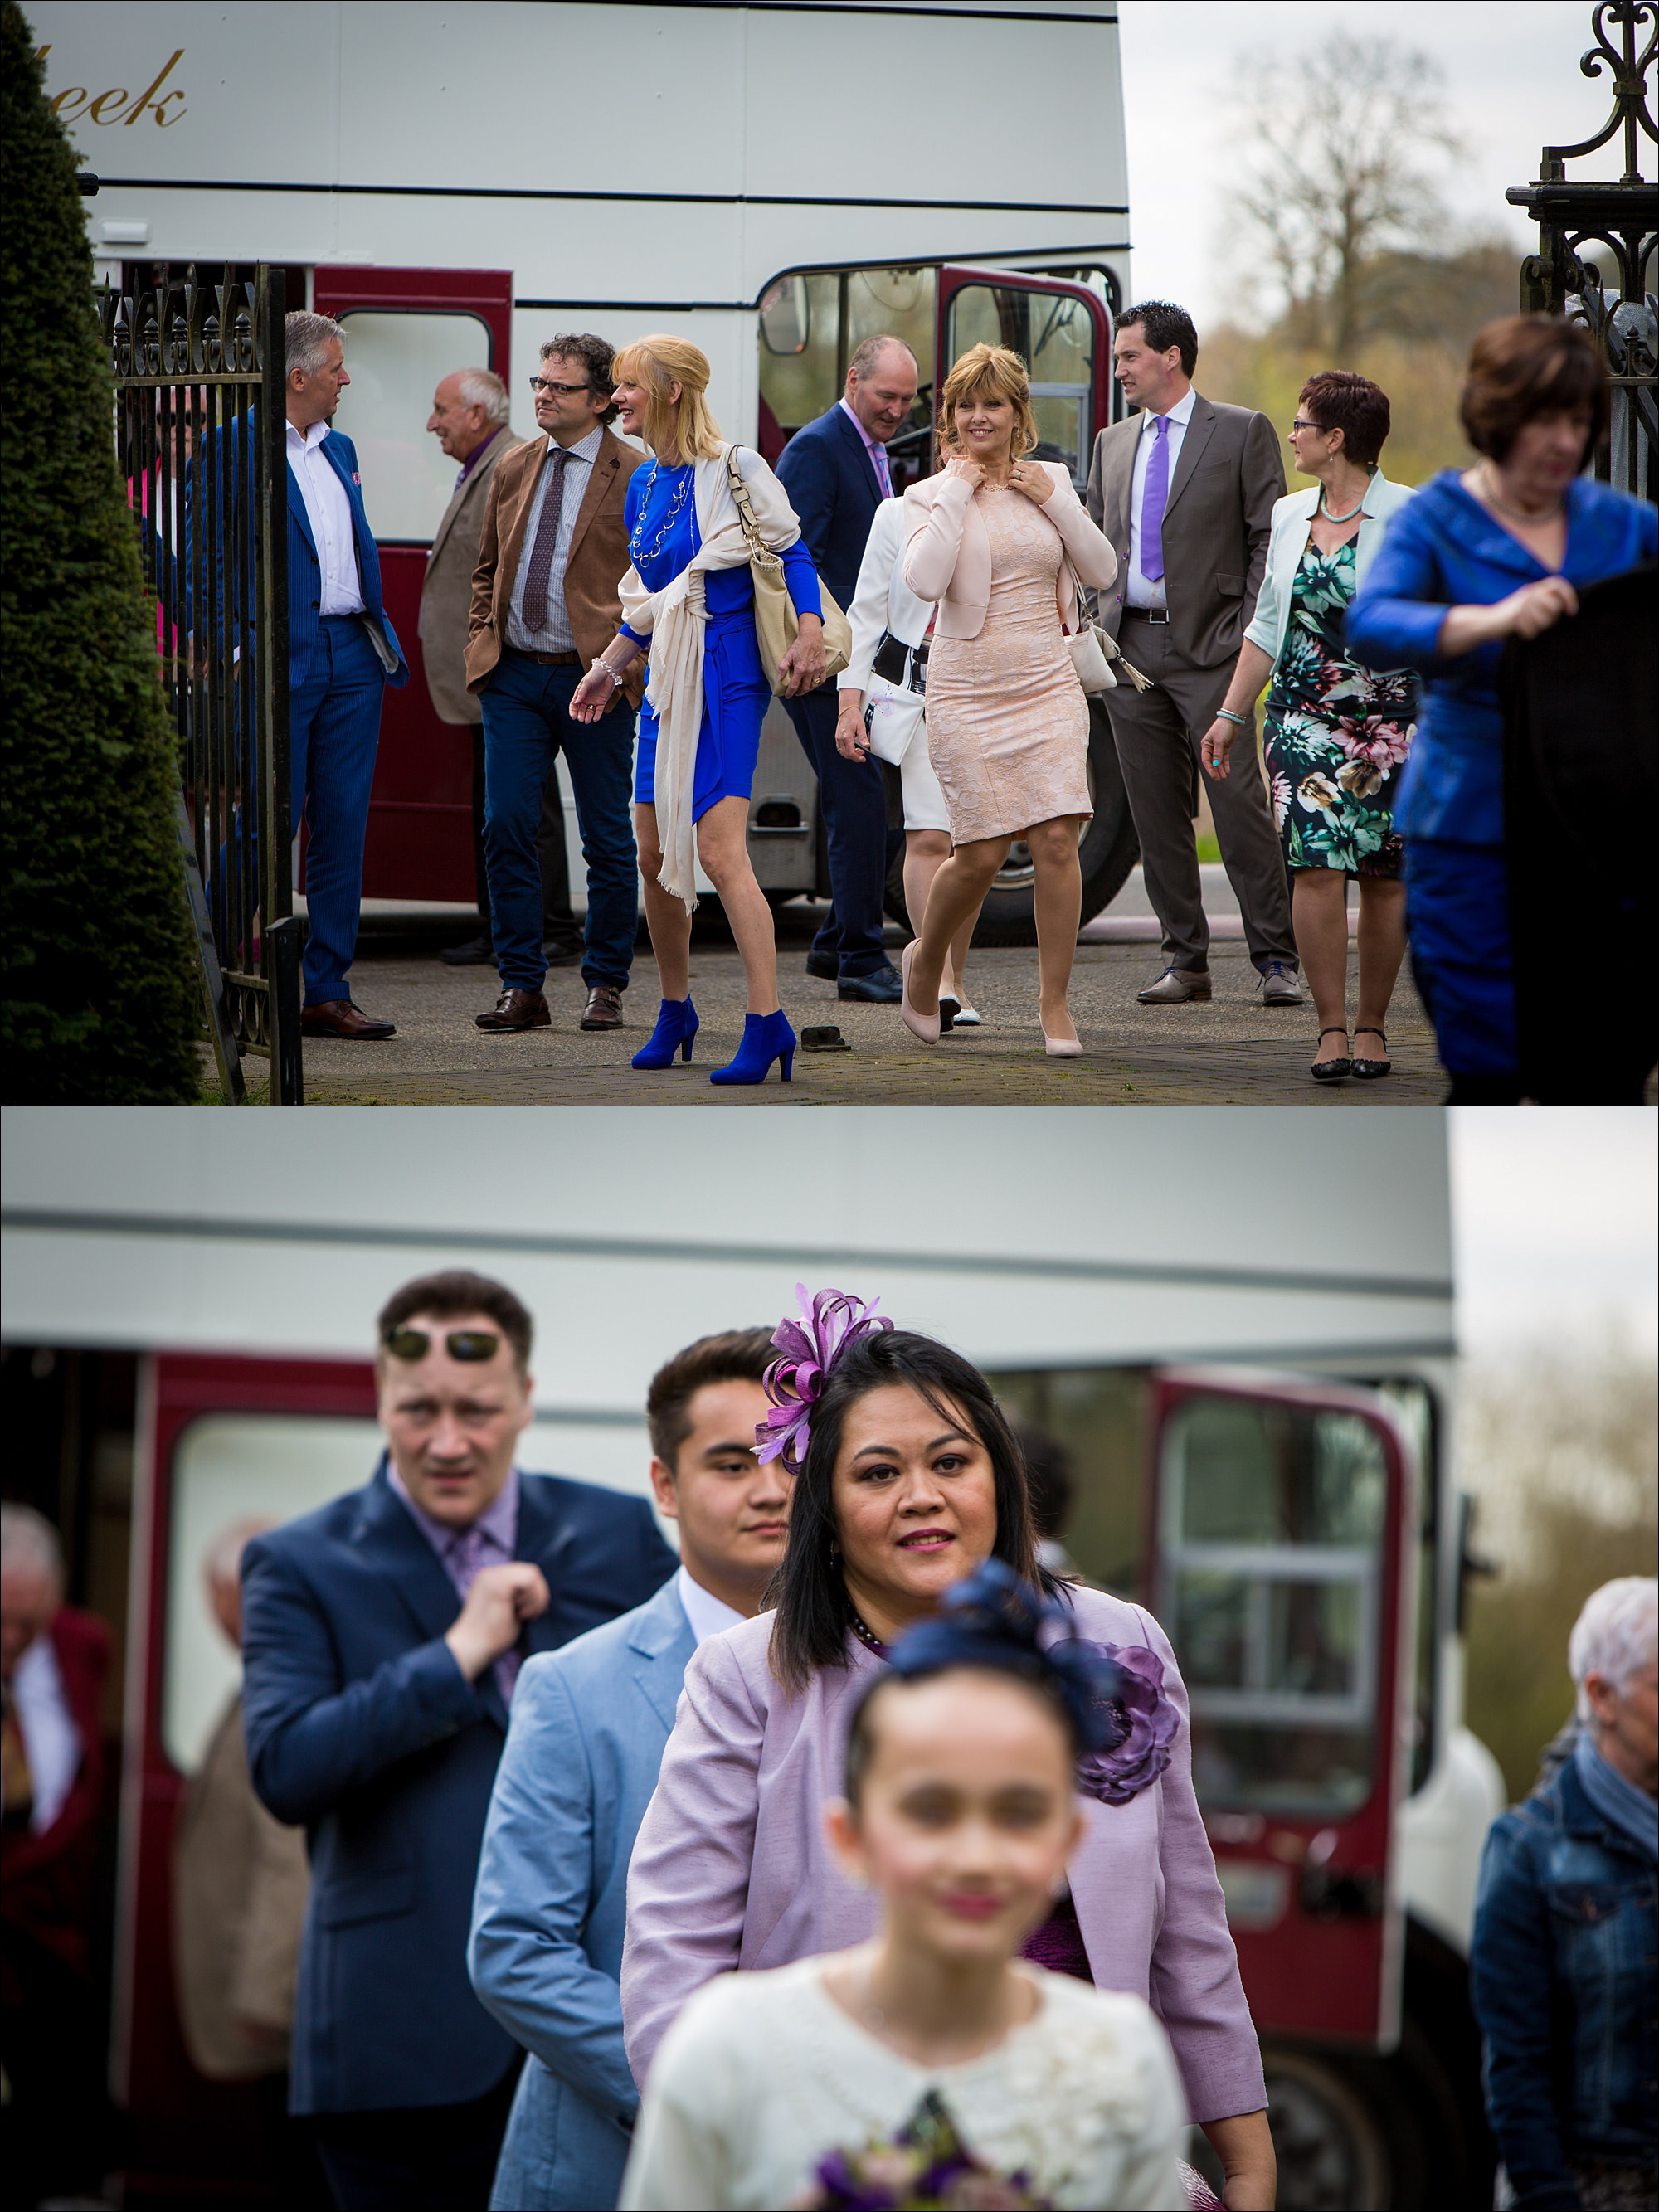 wedding photographer dublin david duignan photography real weddings Ireland 41